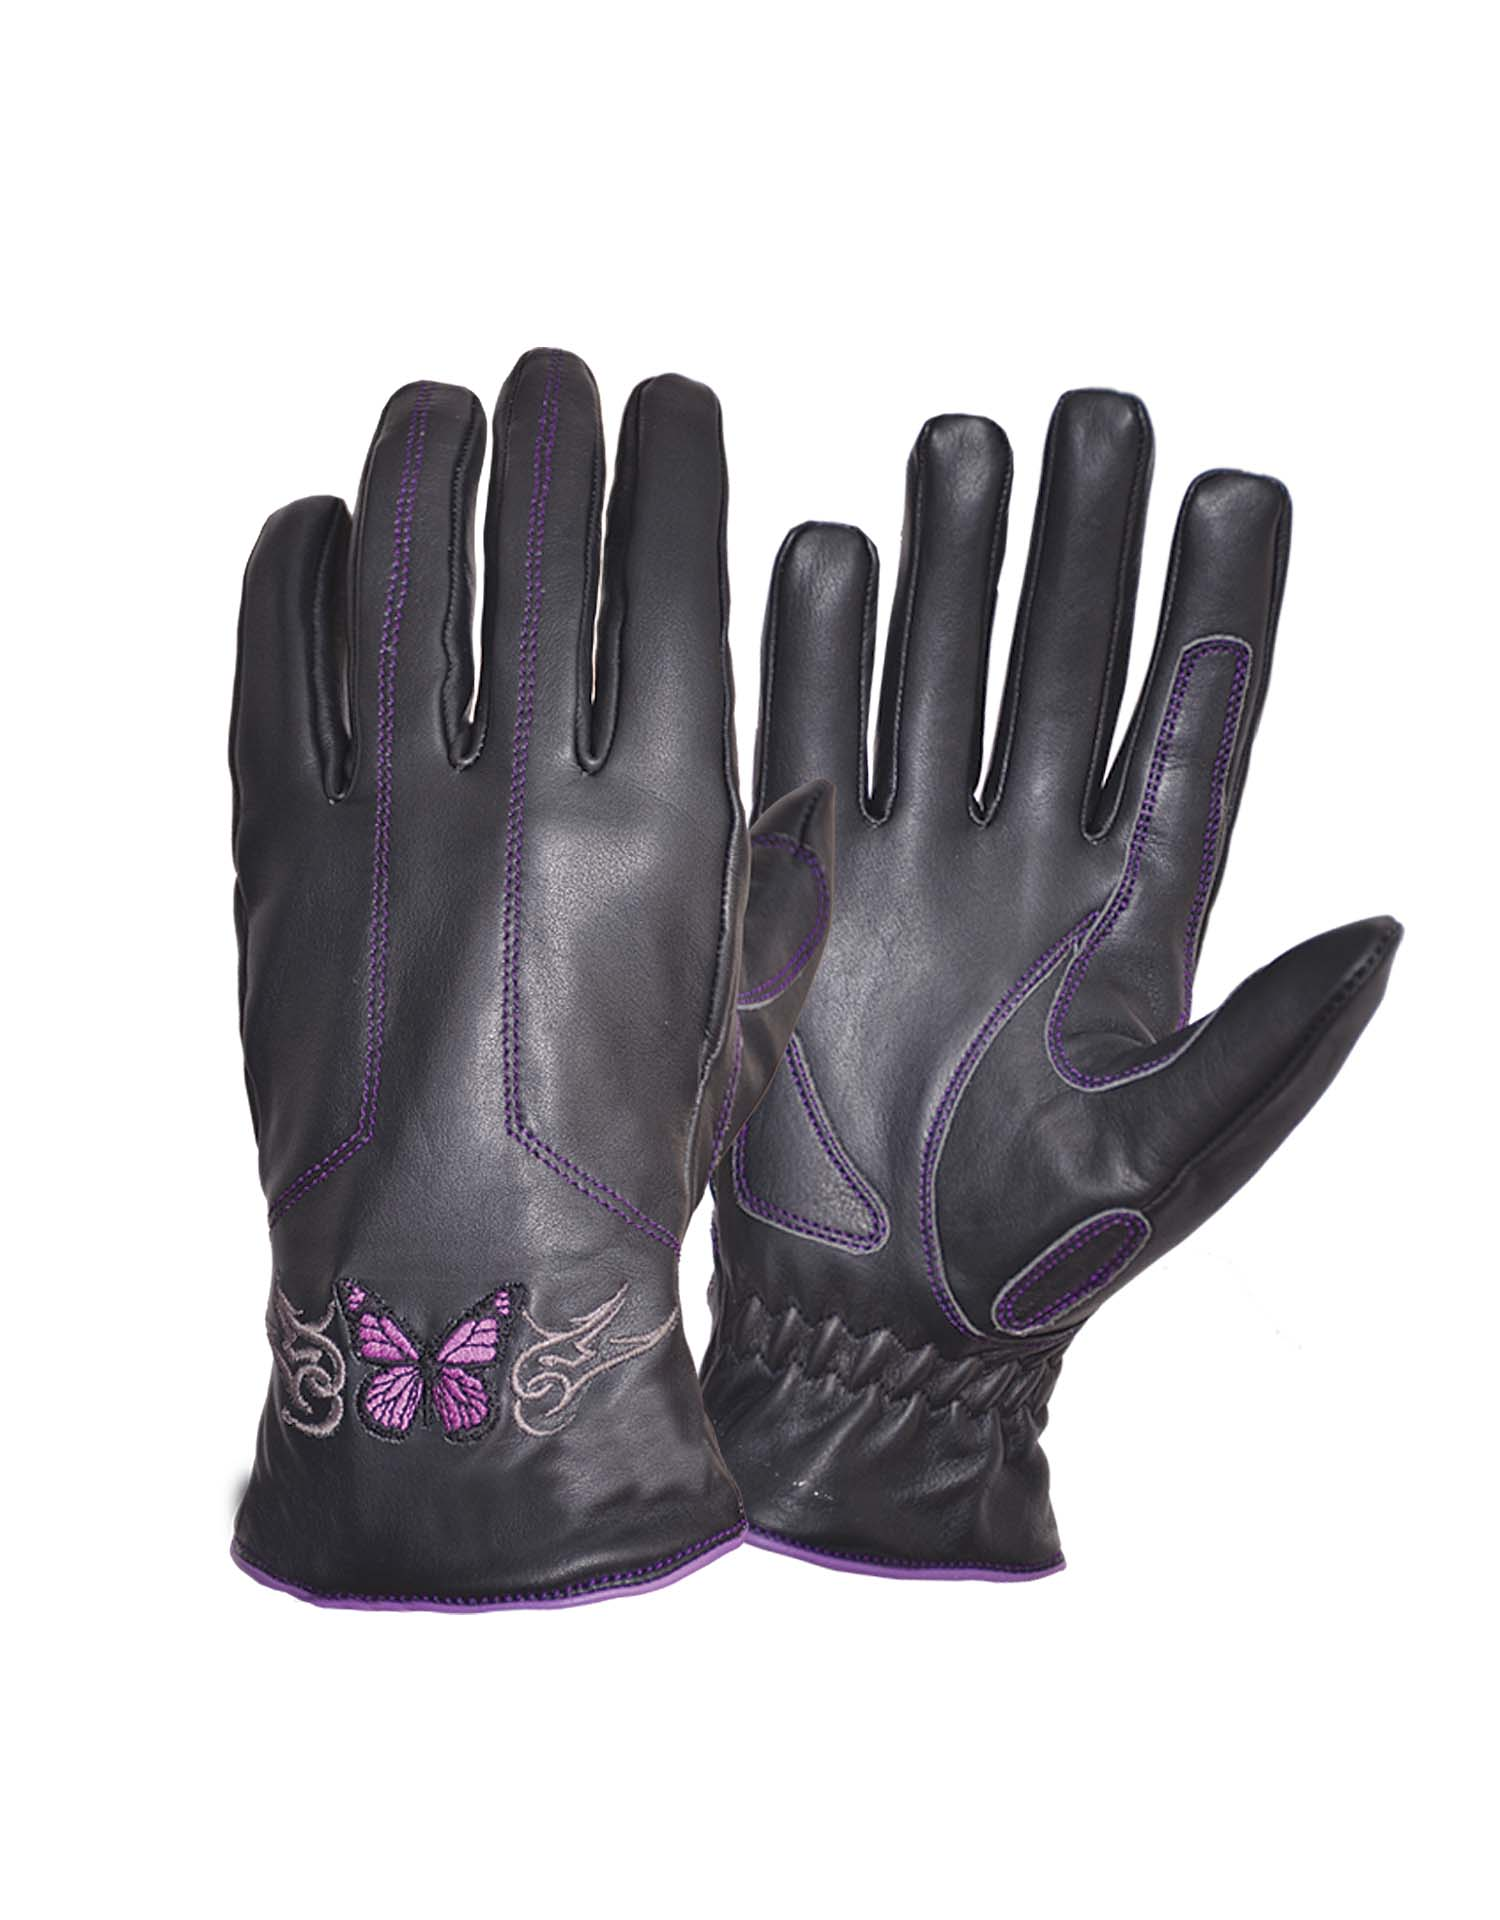 Ladies Full-Finger Gloves with Butterfly, Purple (Size: Large)